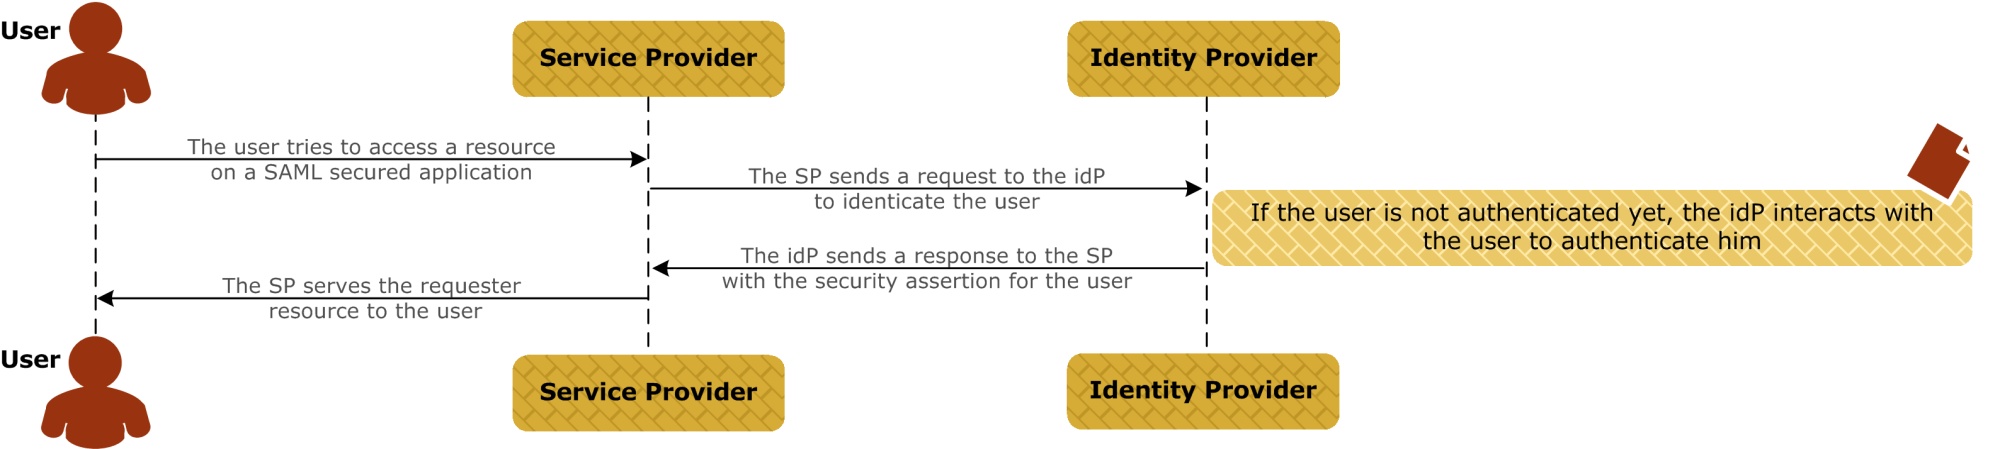 hight resolution of sso message flows